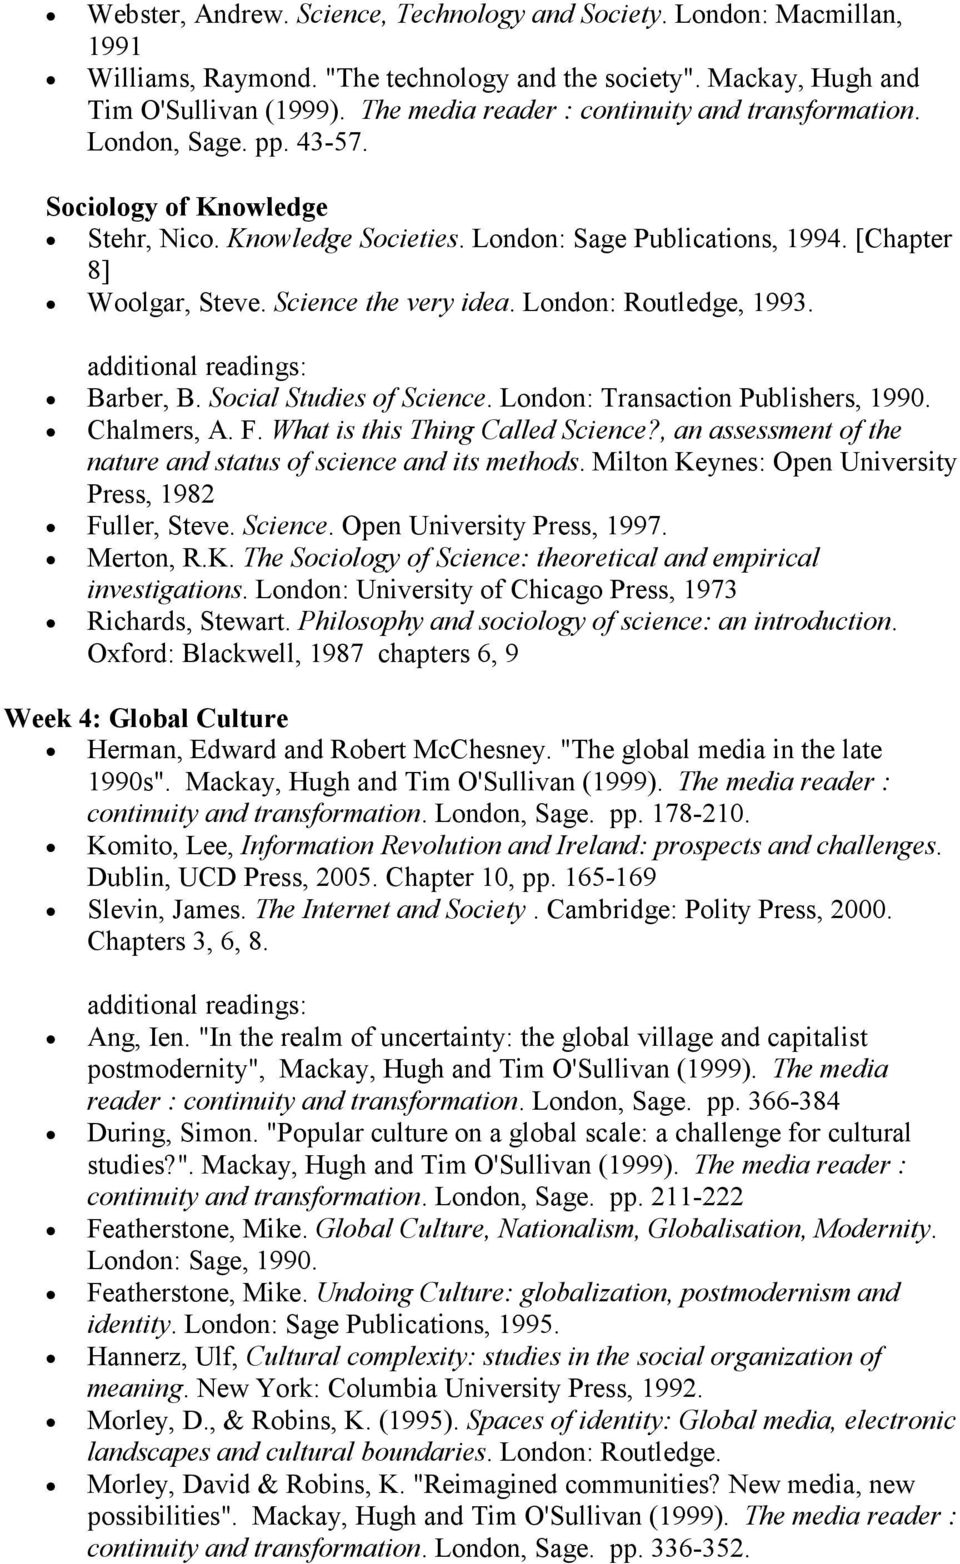 Science the very idea. London: Routledge, 1993. Barber, B. Social Studies of Science. London: Transaction Publishers, 1990. Chalmers, A. F. What is this Thing Called Science?